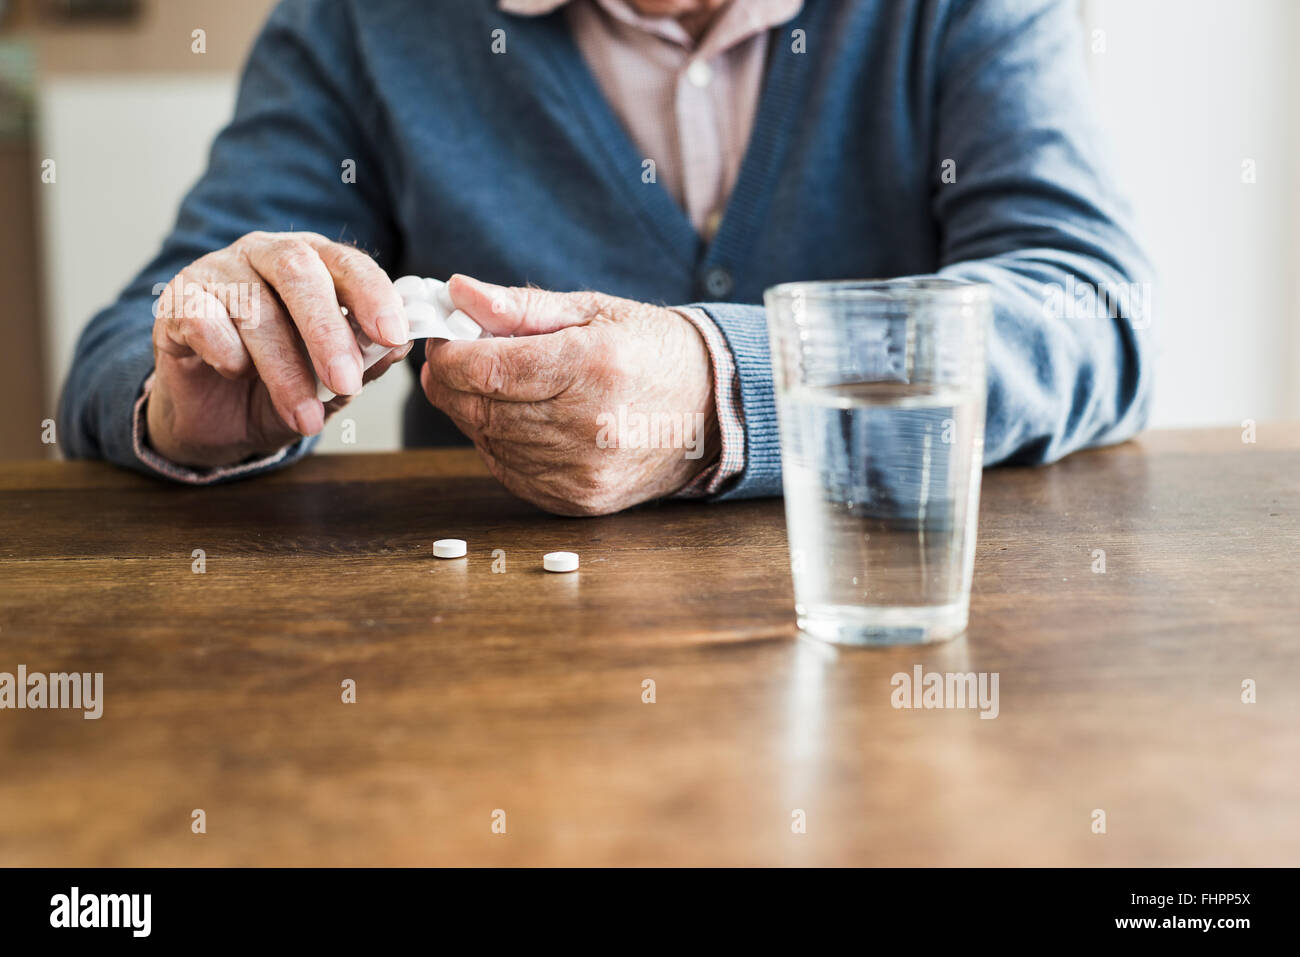 Hands of senior man taking tablets out of blister pack, close-up - Stock Image